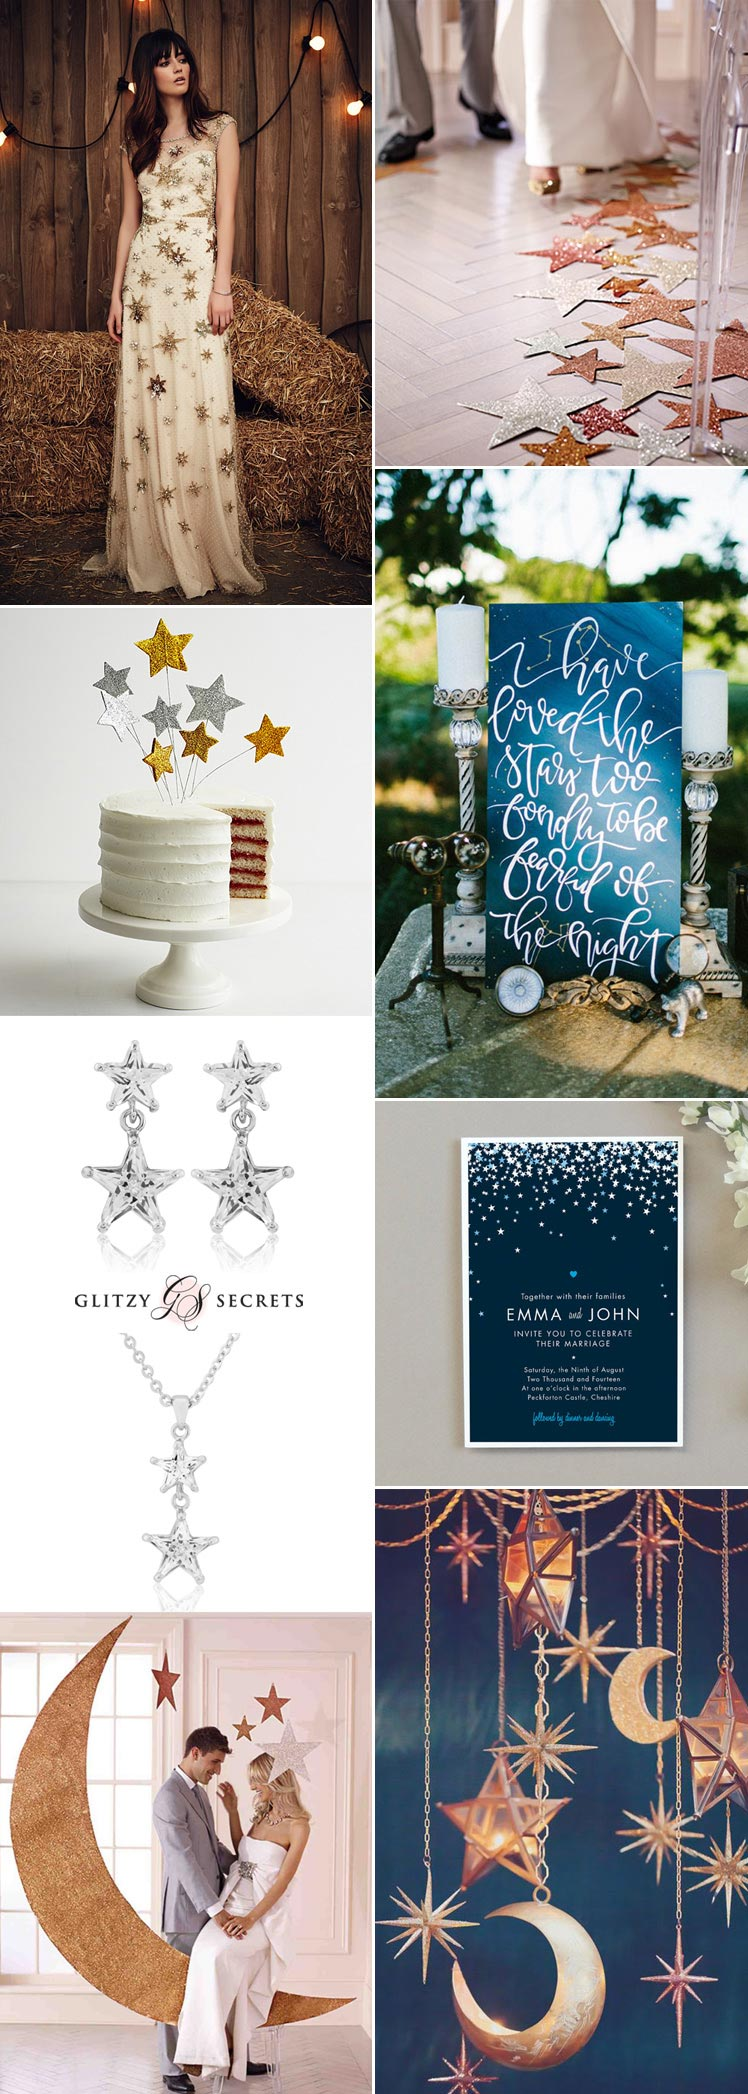 Star wedding theme ideas